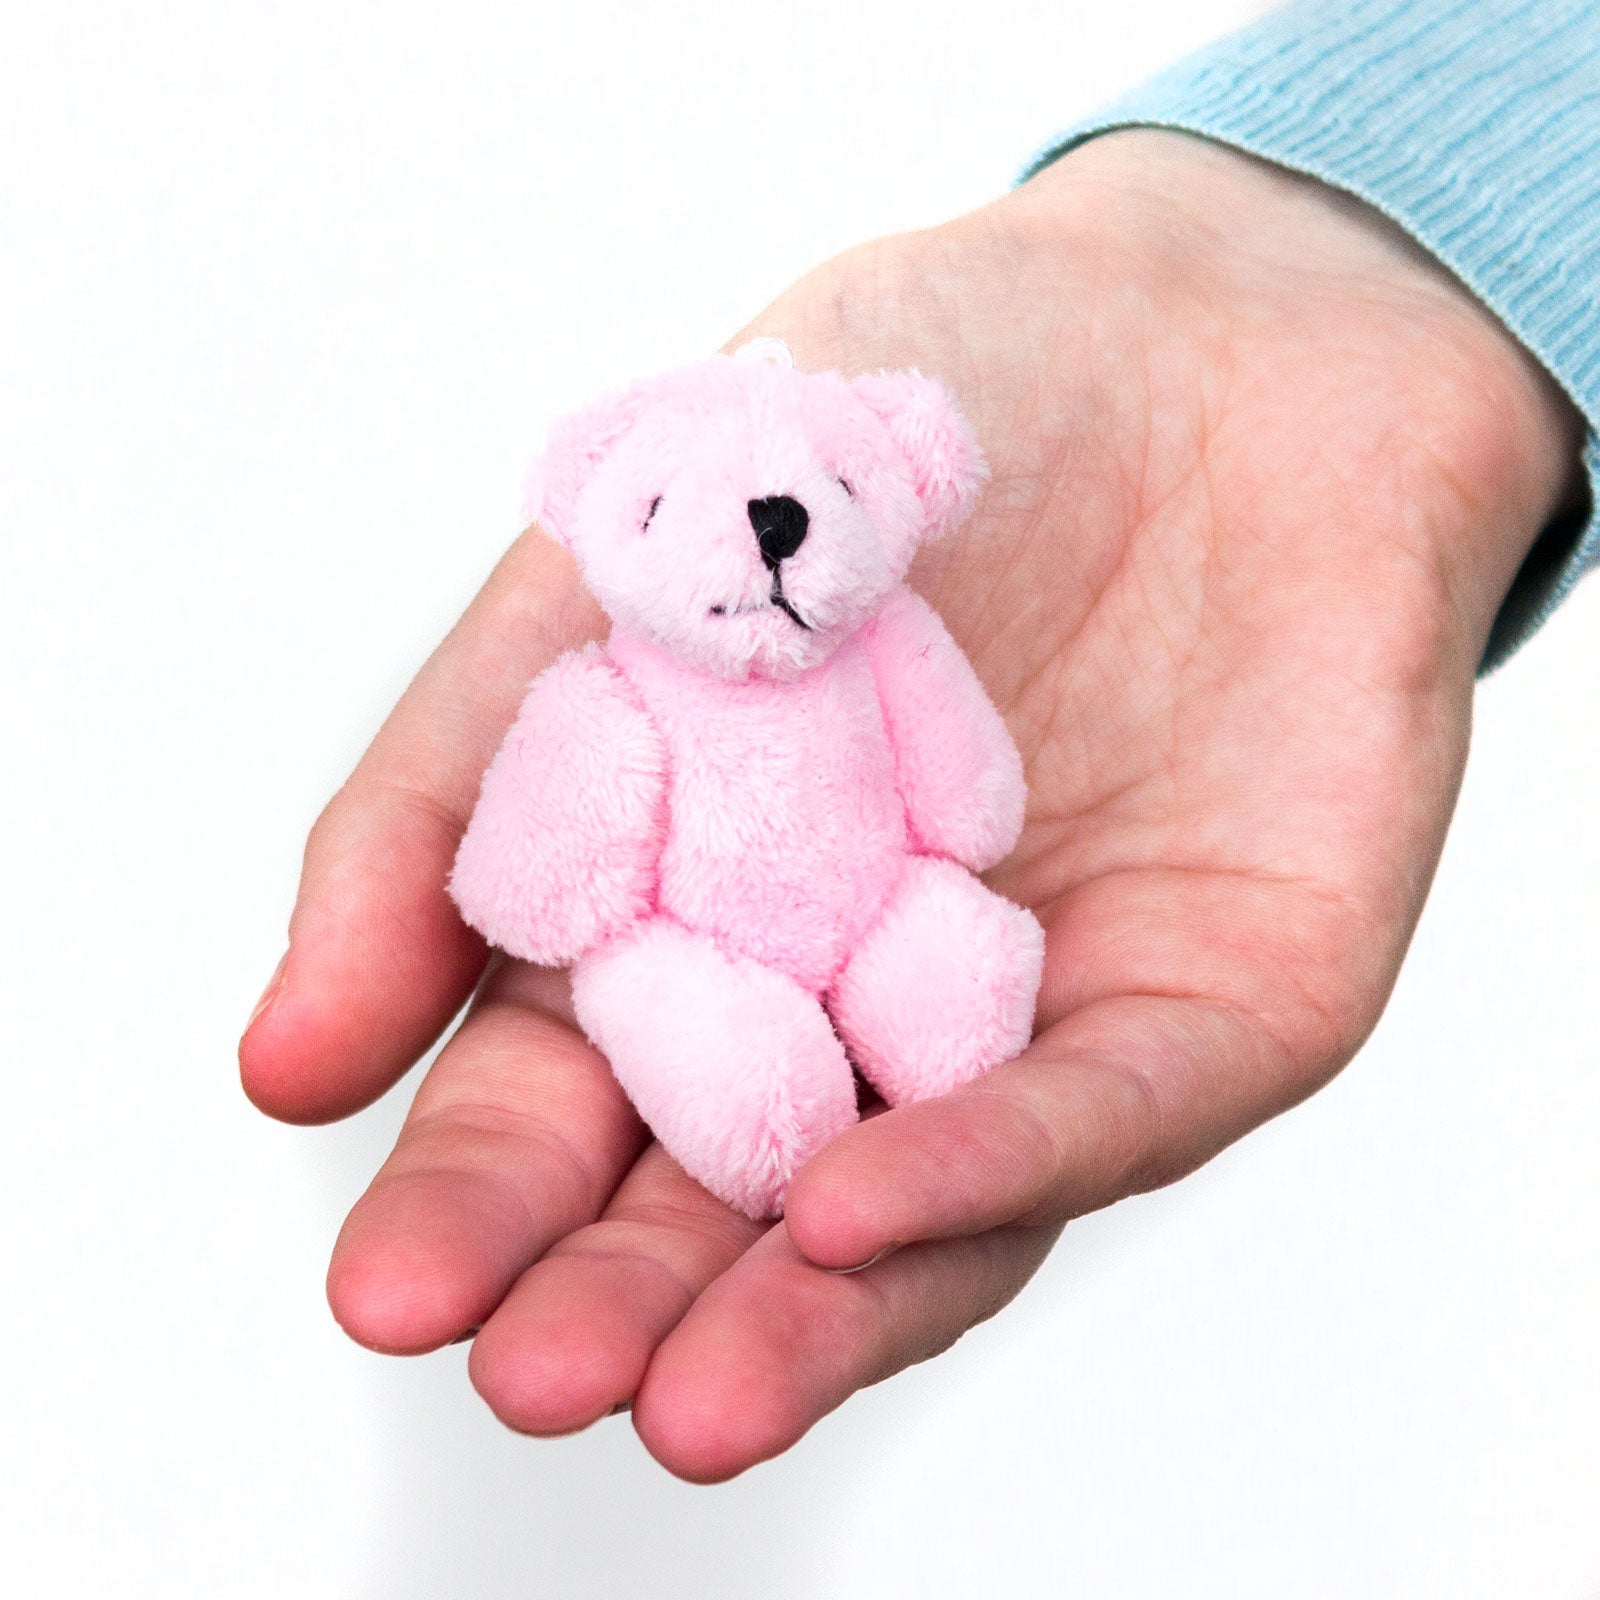 Small PINK Teddy Bears X 80 - Cute Soft Adorable